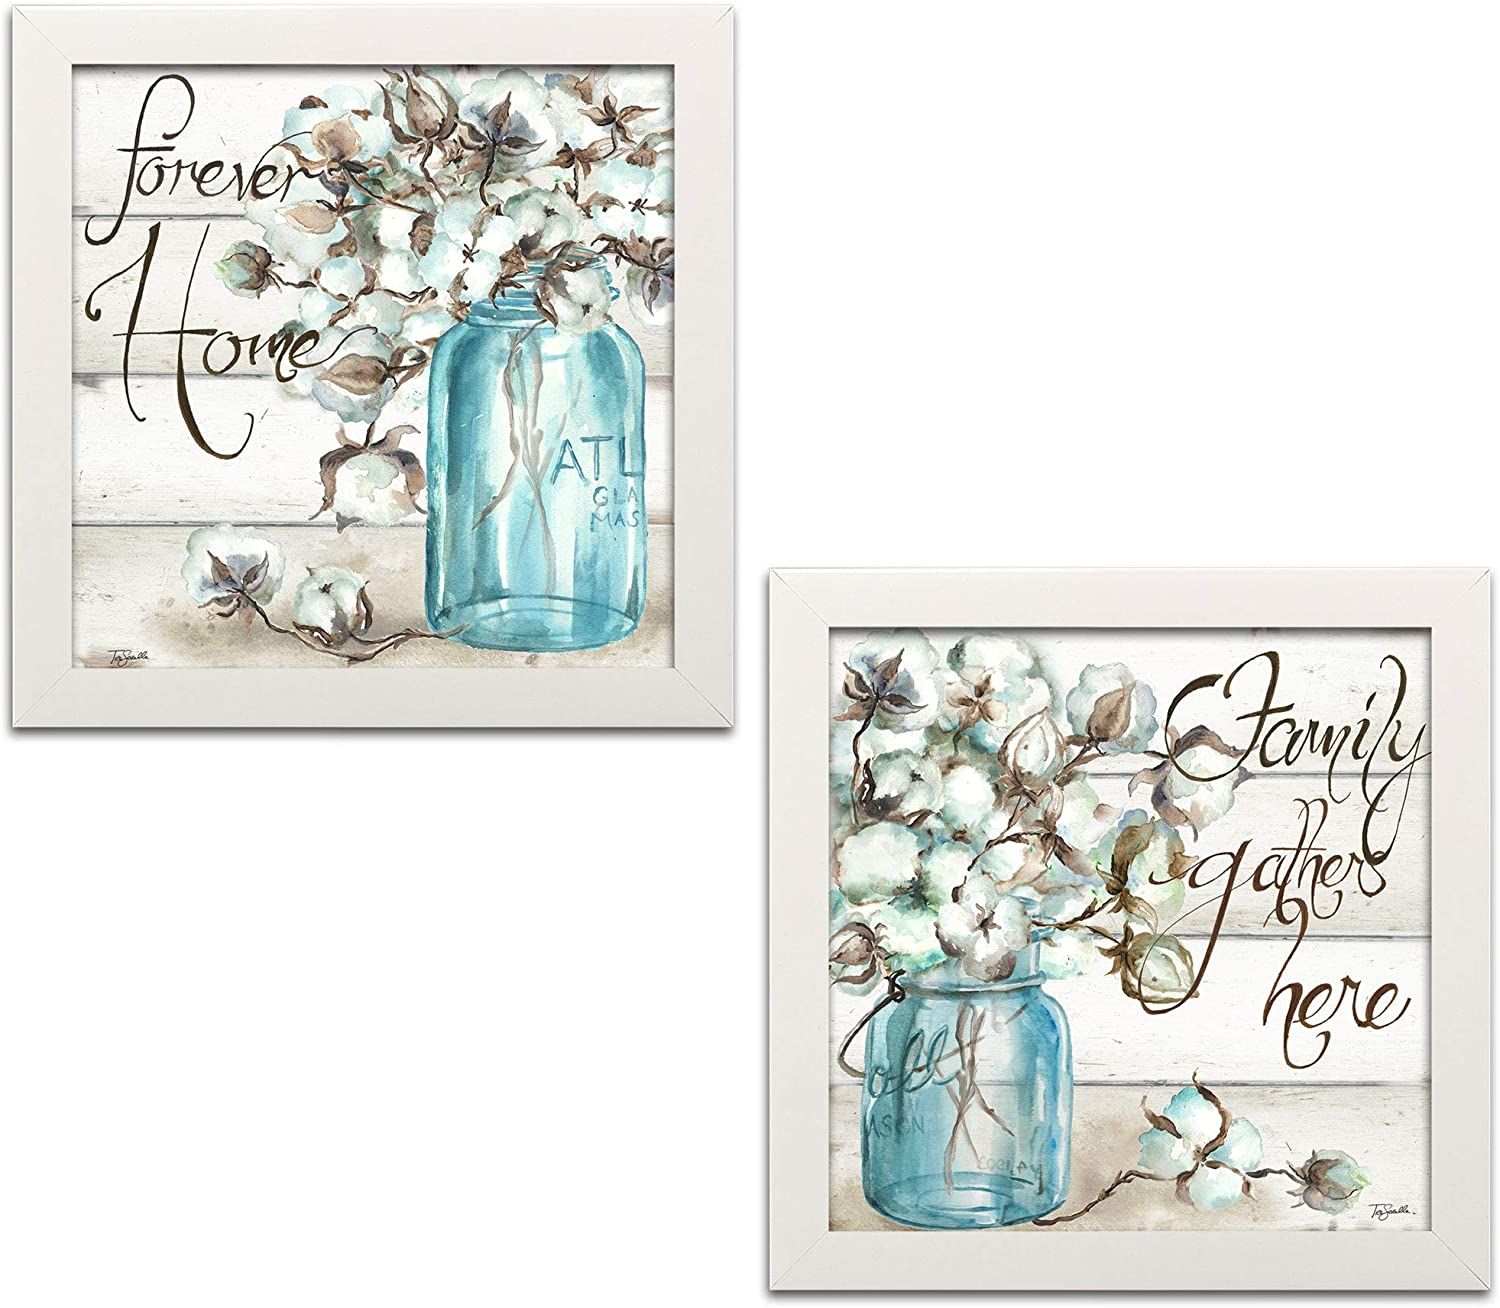 Beautiful Watercolor-Style Family Gathers Here and Forever Home Mason Jar Floral Set by TRE Sorelle Studios; Two 12x12in White Framed Prints